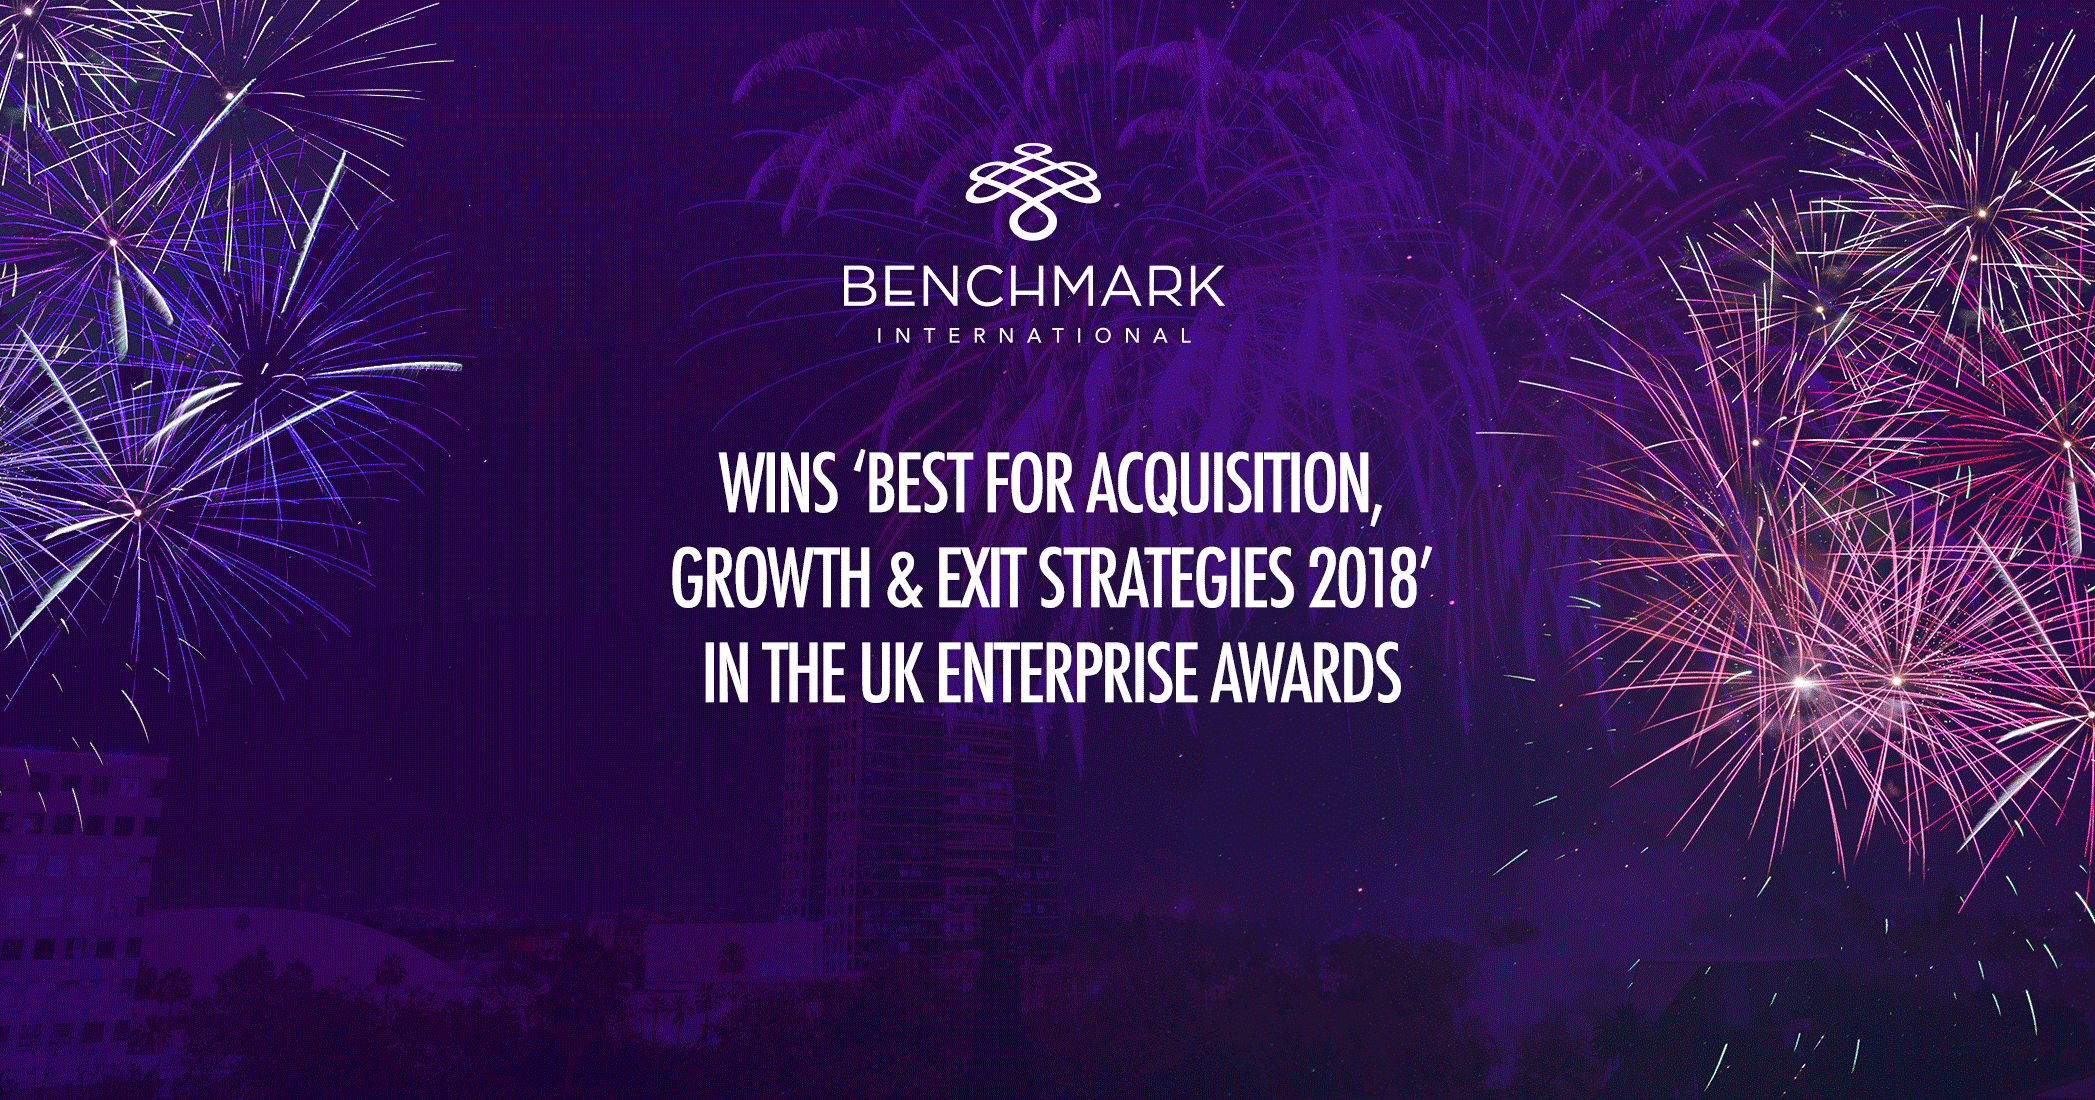 Benchmark International Wins 'Best for Acquisition, Growth & Exit Strategies 2018' in the UK Enterprise Awards